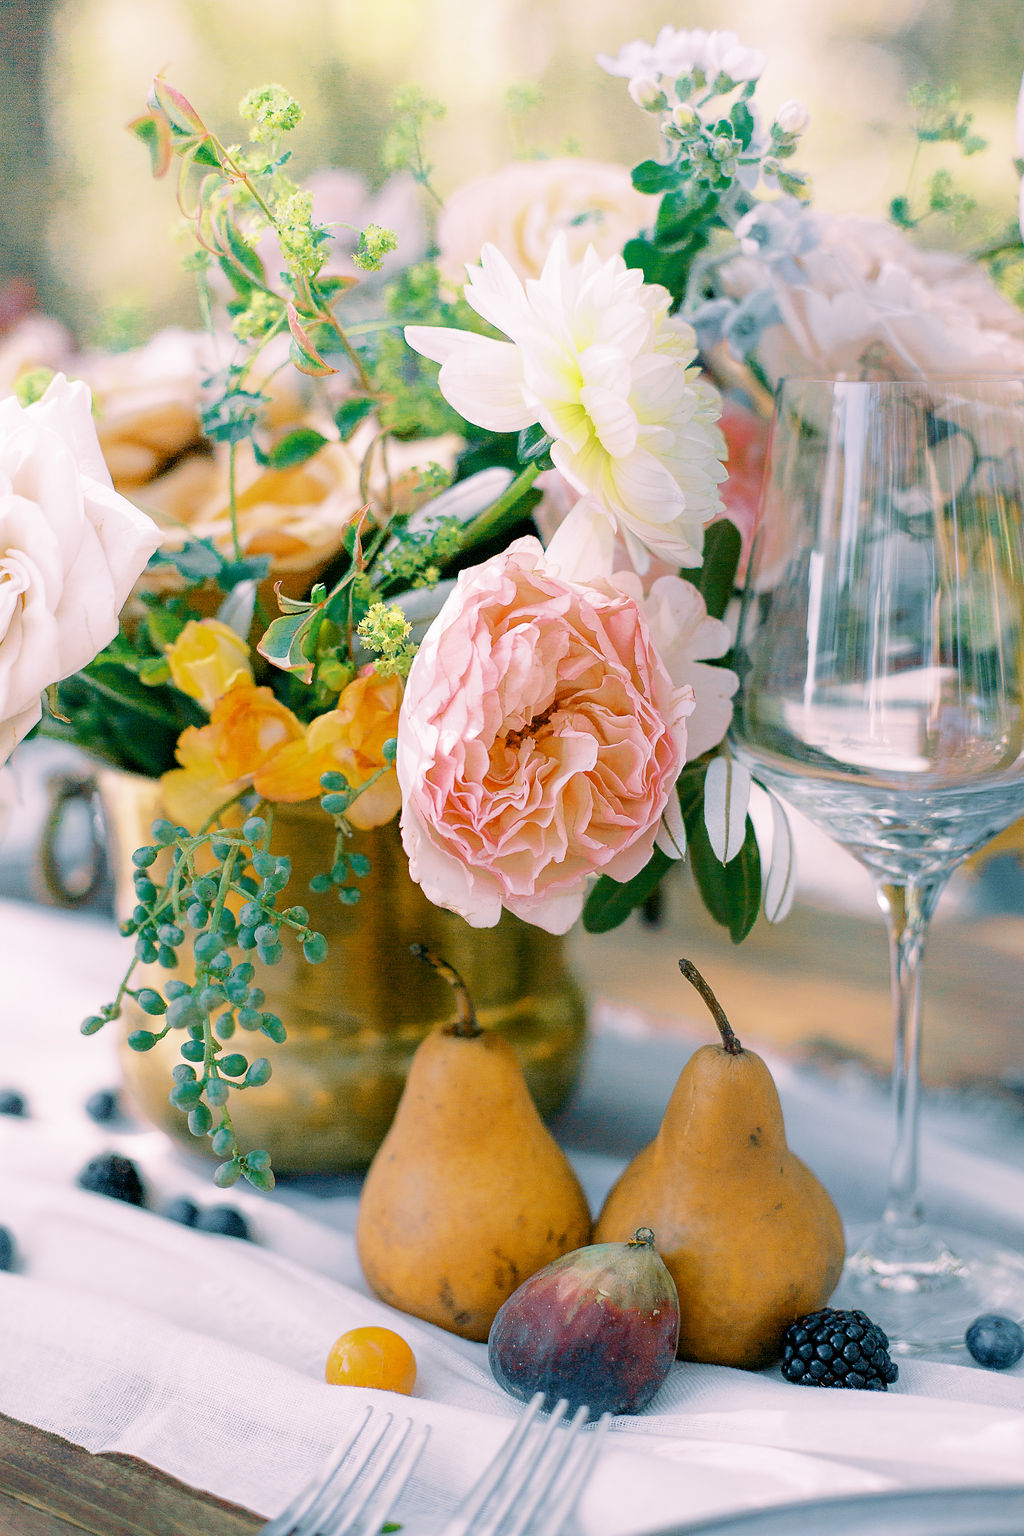 Fruit wedding table decor: Ethereal Wedding Inspiration at The White Sparrow